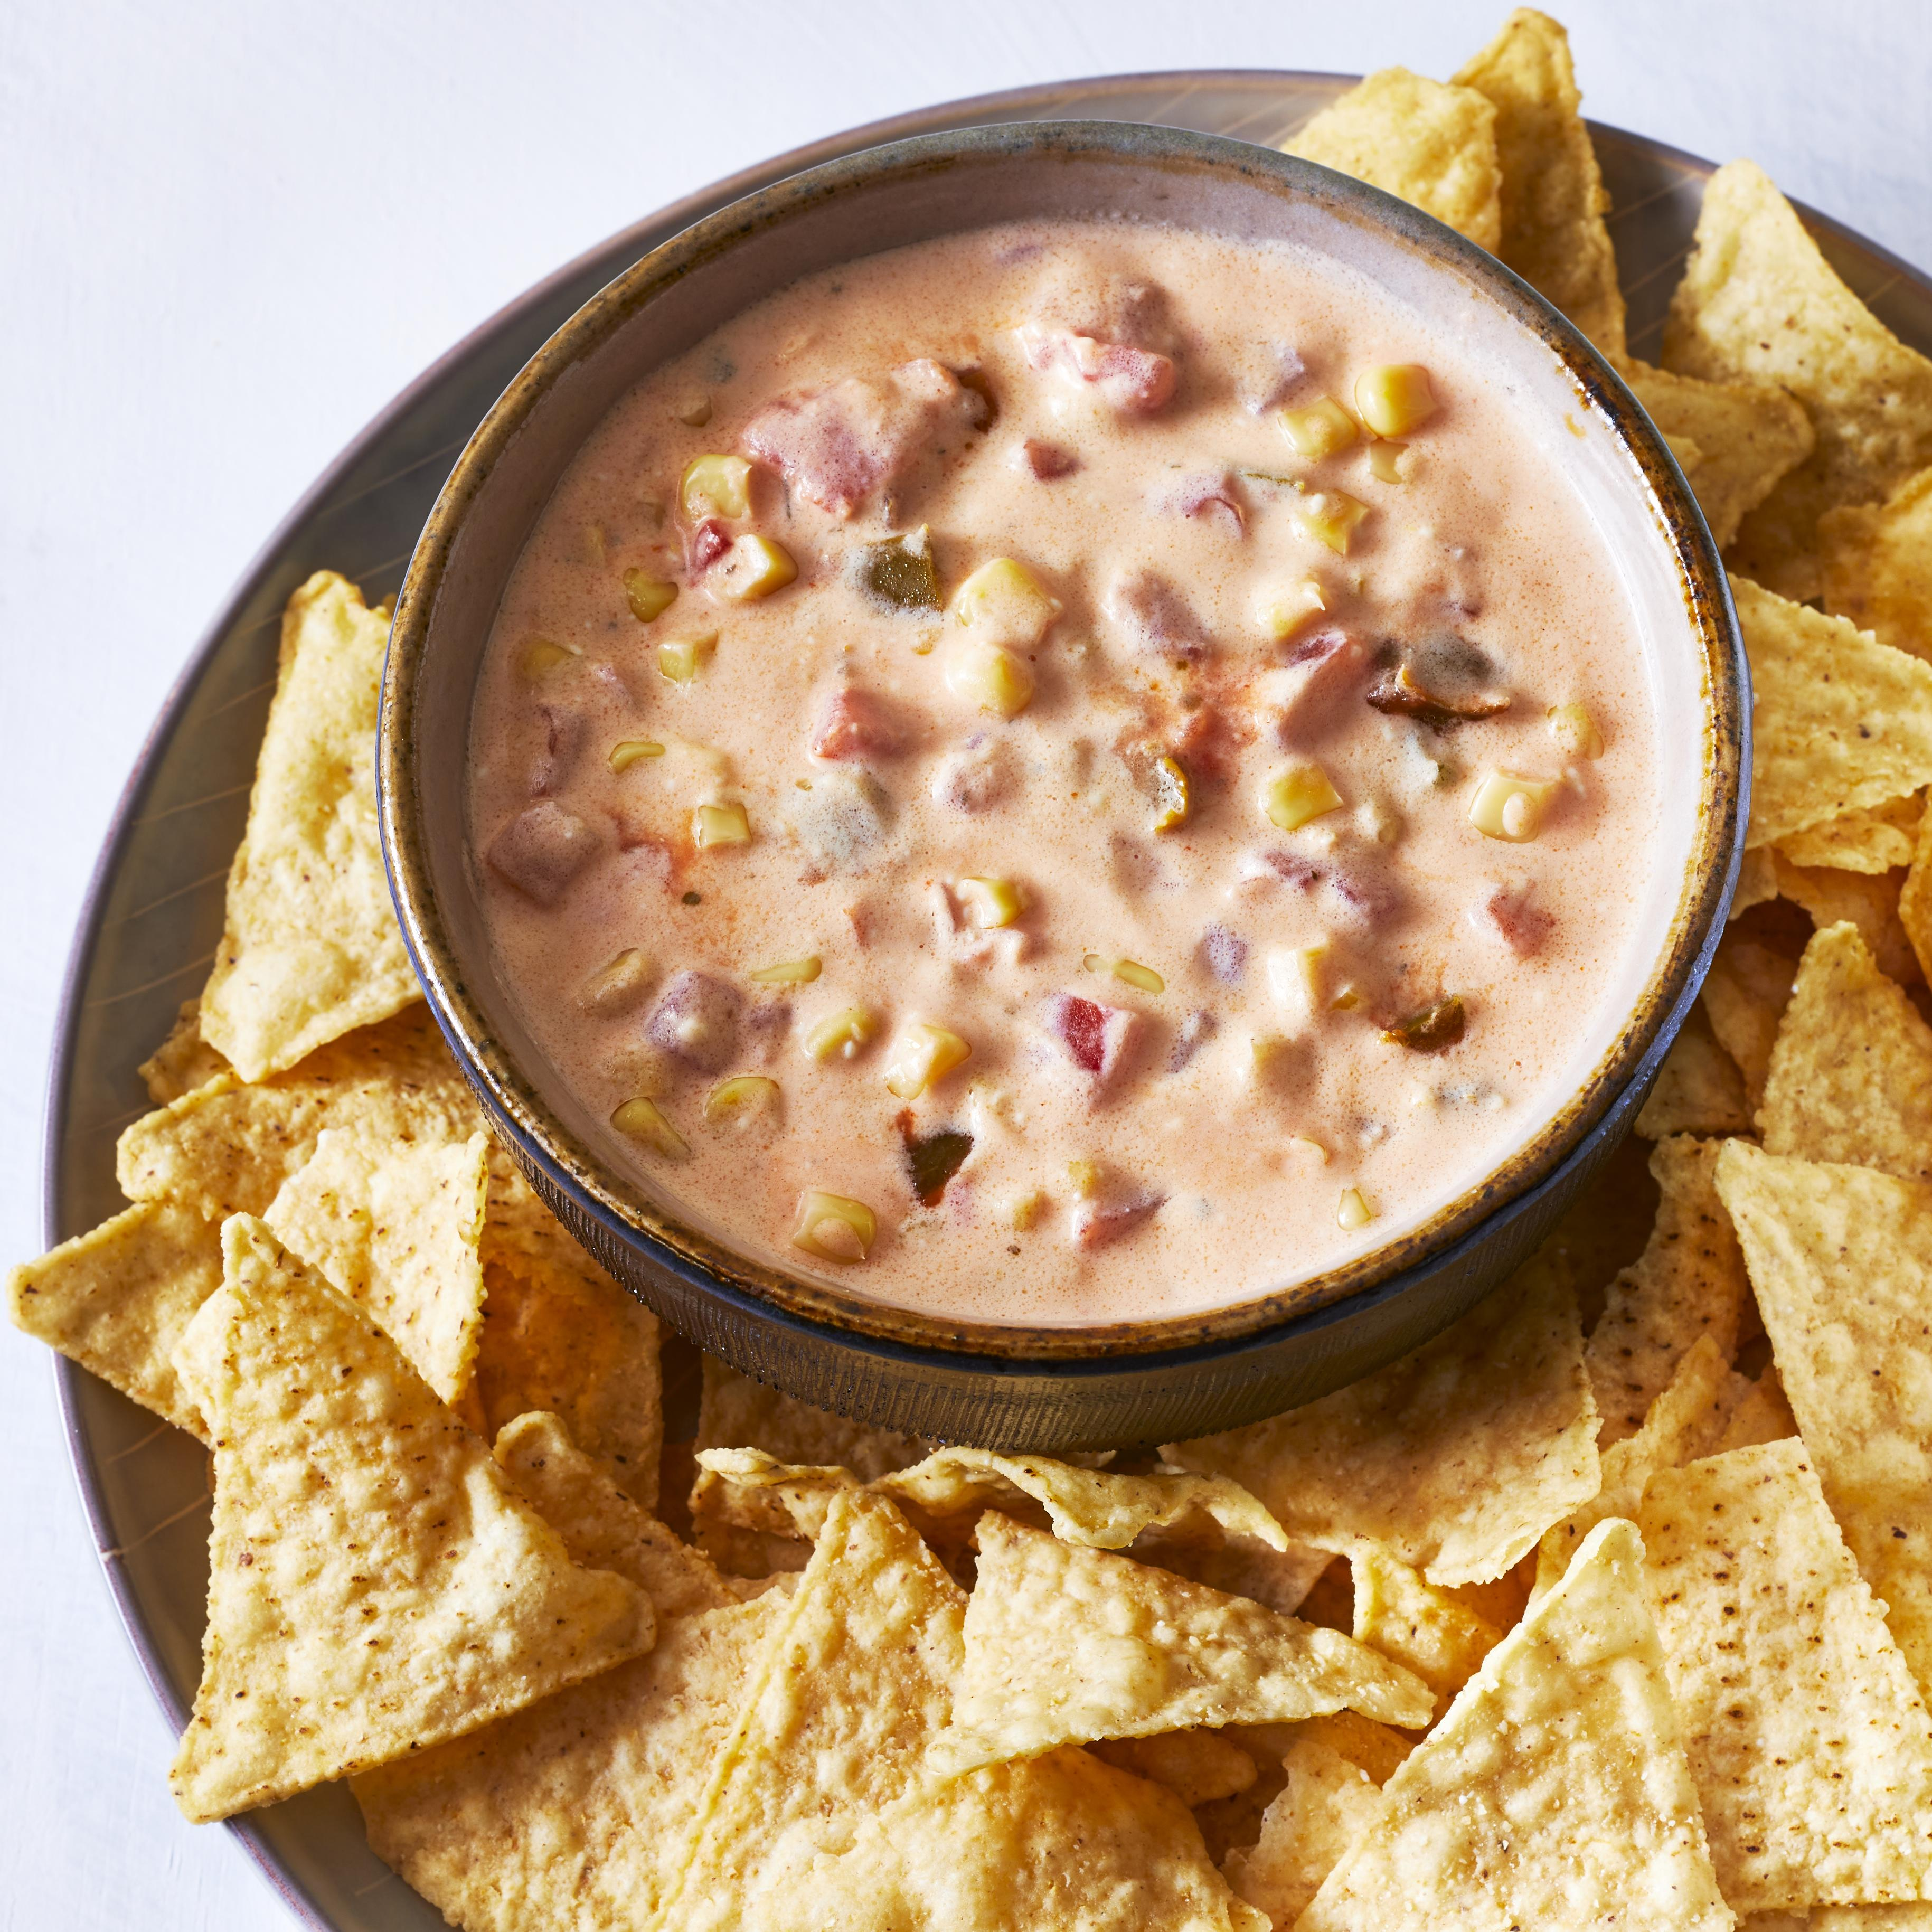 Warm Mexican Corn Dip Allrecipes Trusted Brands